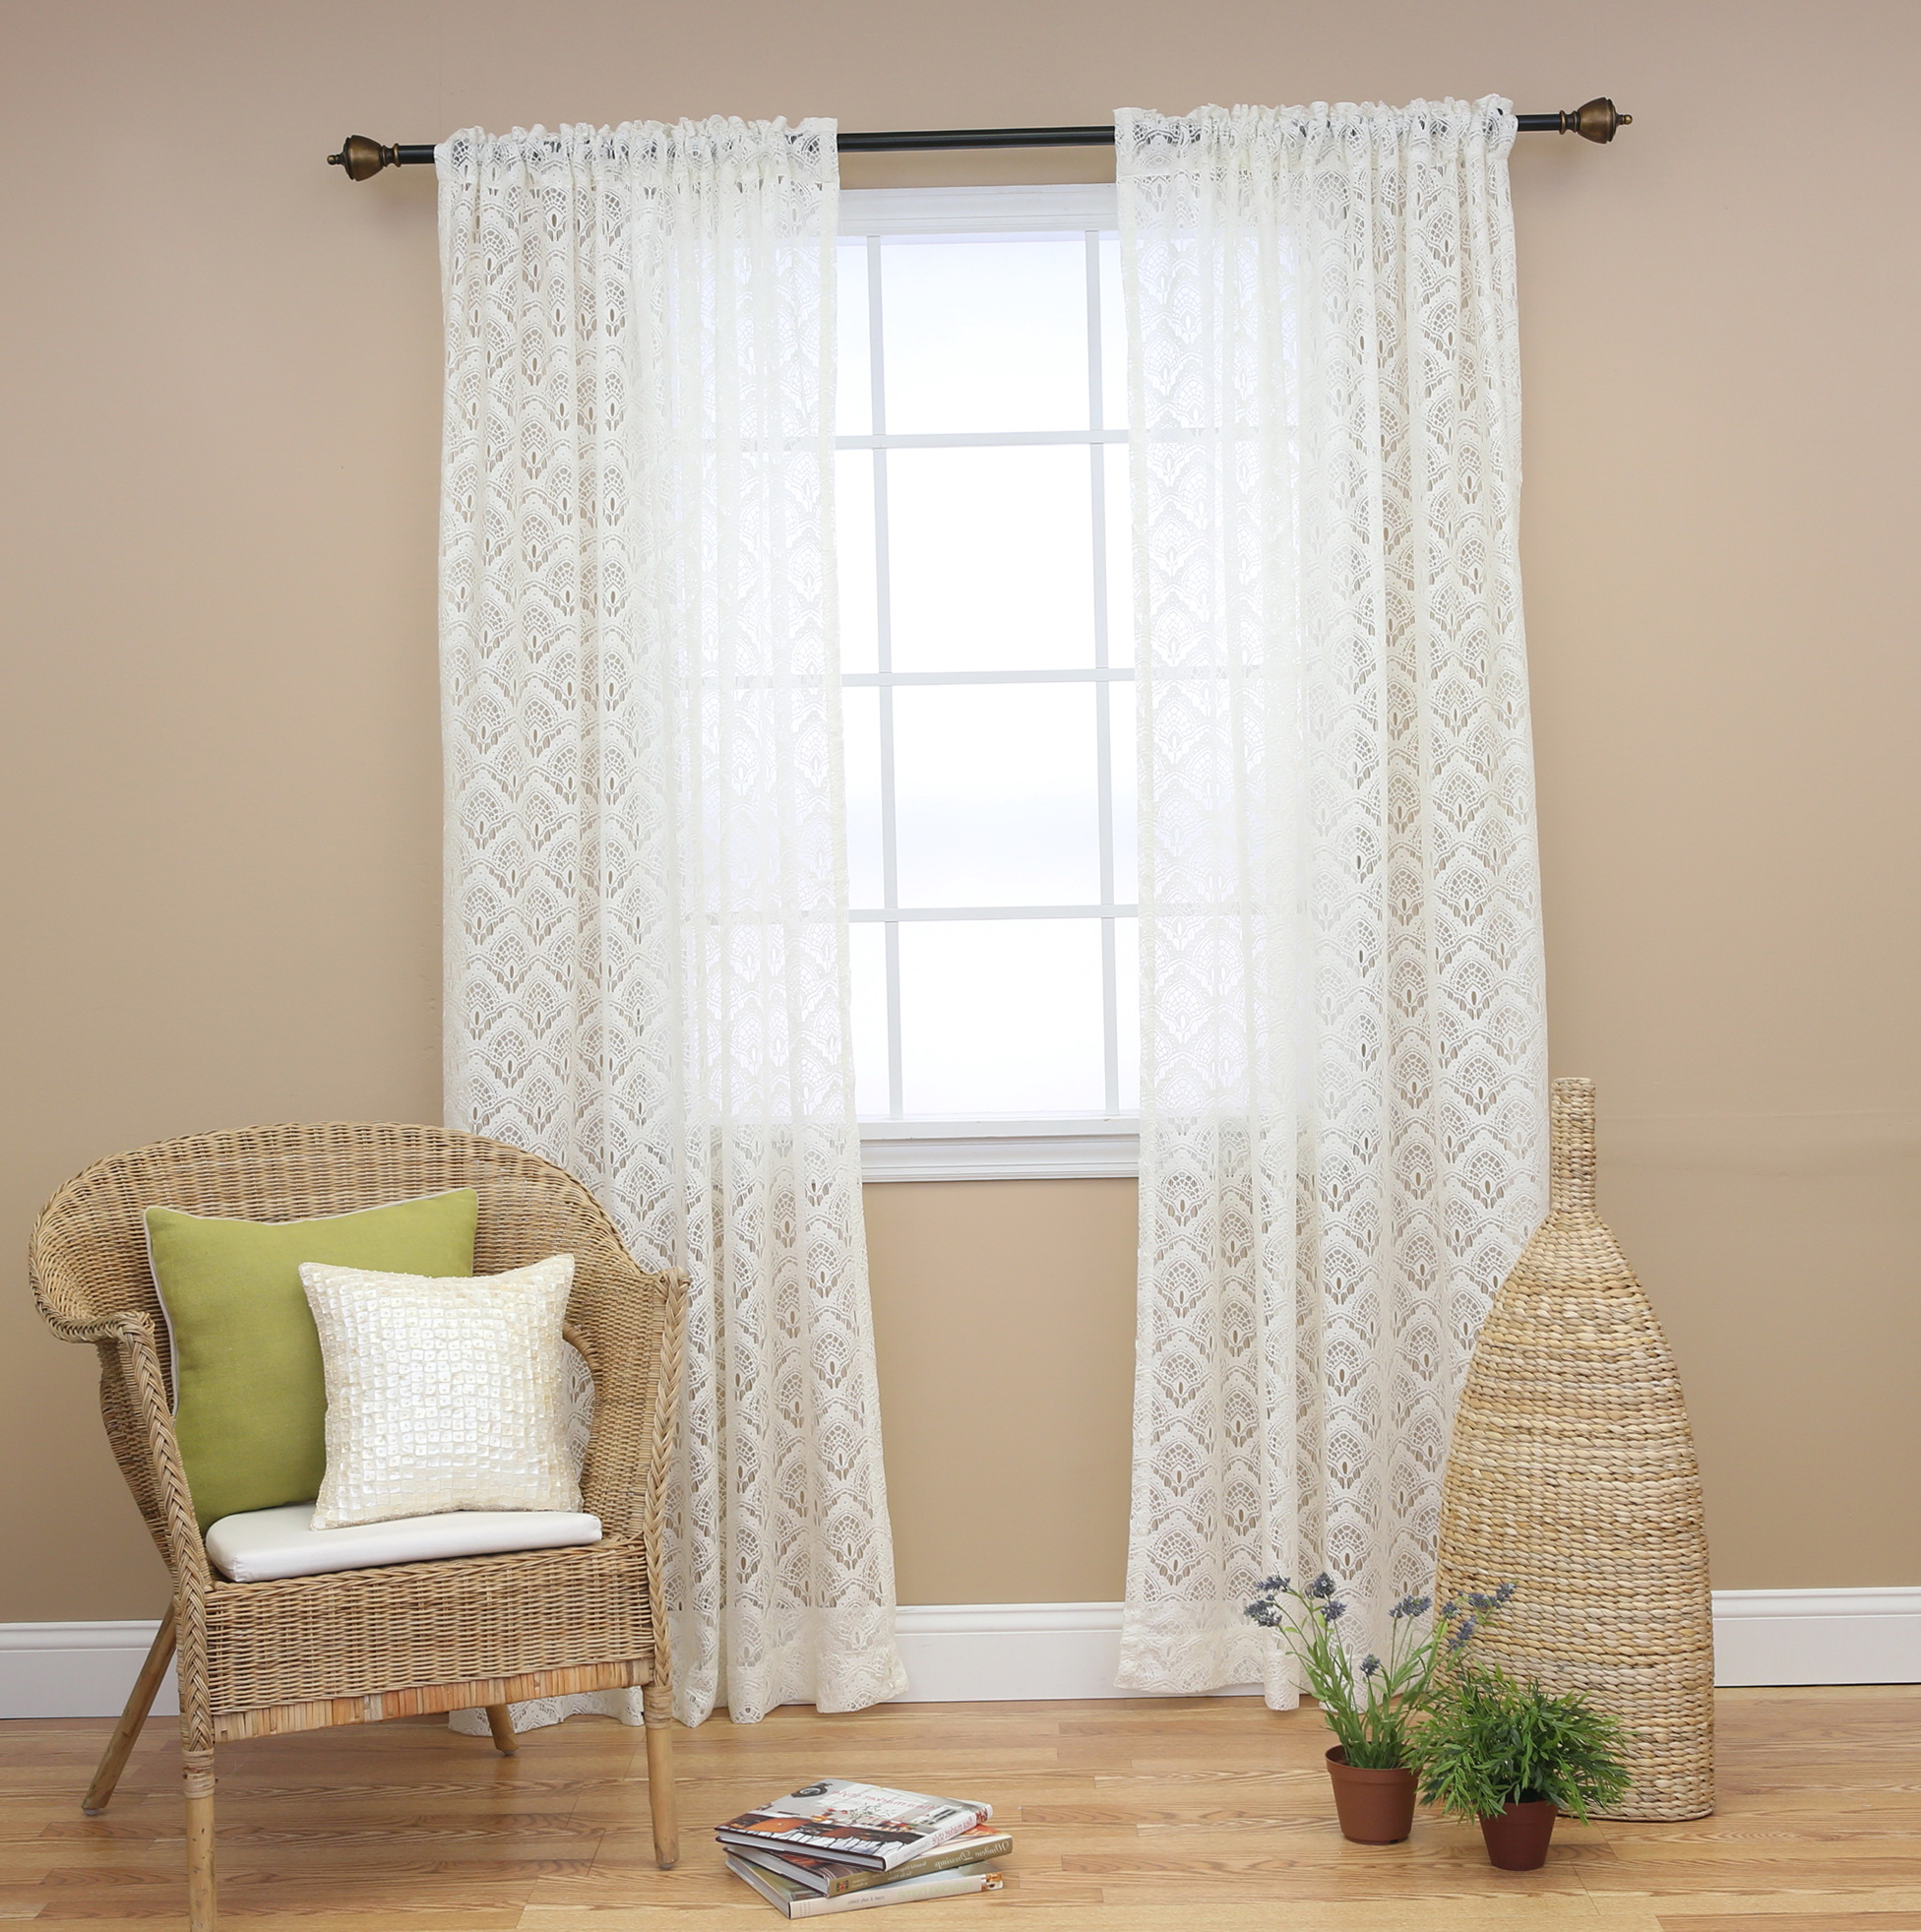 Sheer Curtains With Lace Trim